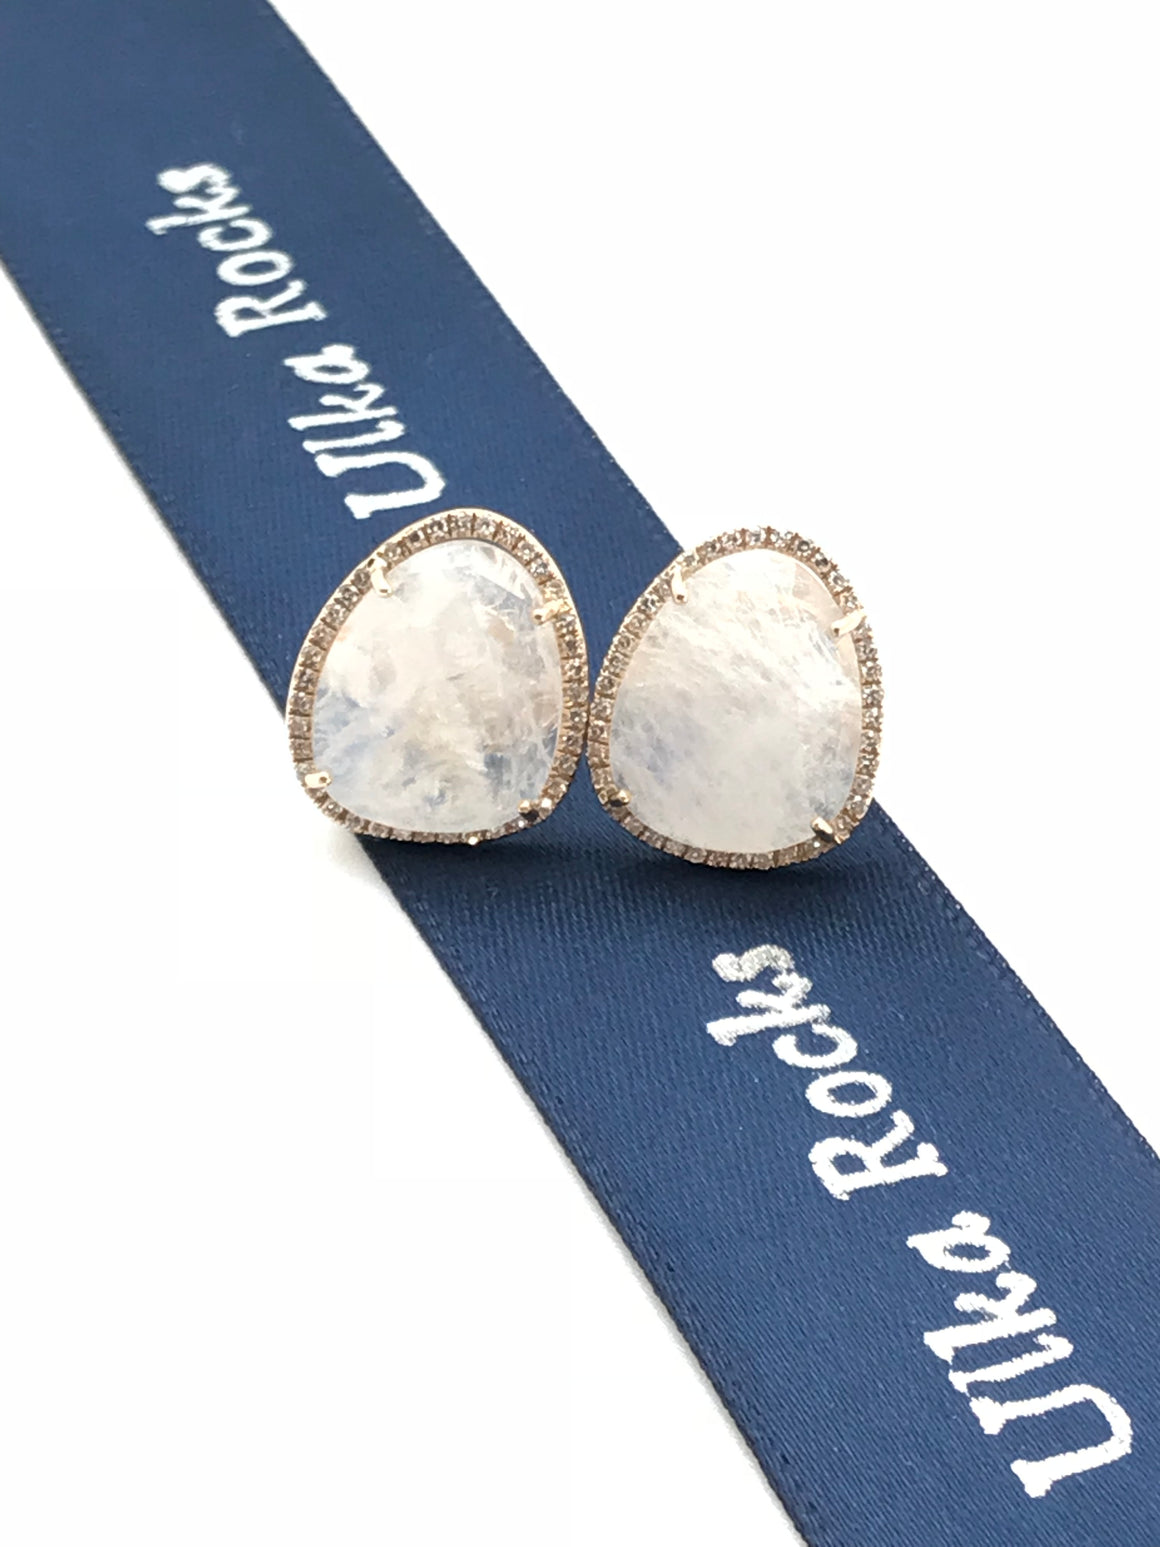 Ulka Rocks Asherton diamond moonstone stud earrings in 14k gold